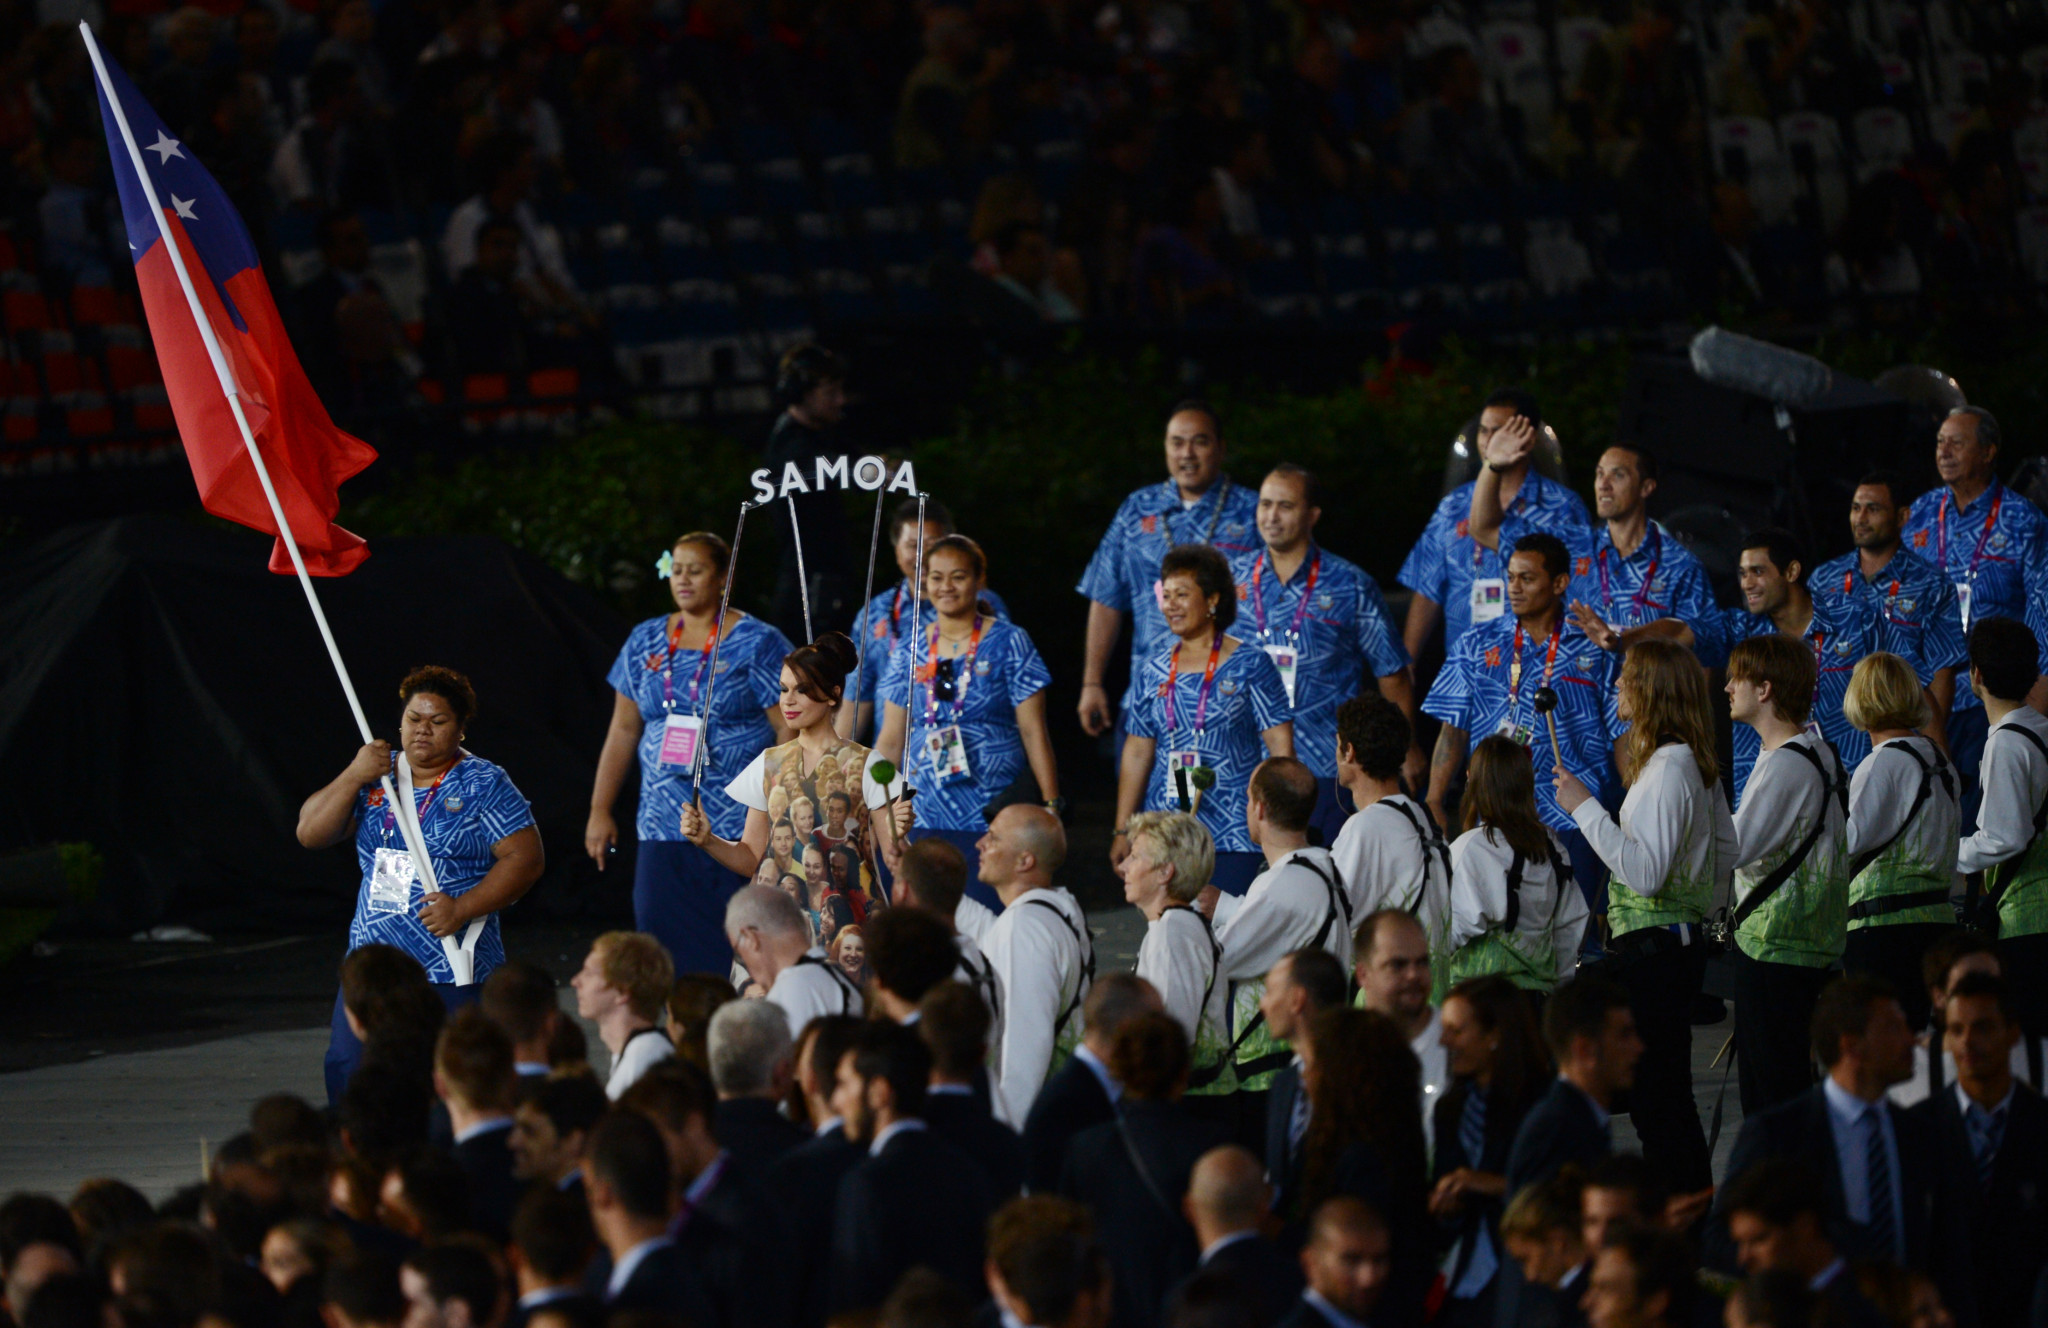 The Samoa Association of Sports and National Olympic Committee is taking steps to offset the carbon emissions associated with it taking part in this year's Olympics ©Getty Images